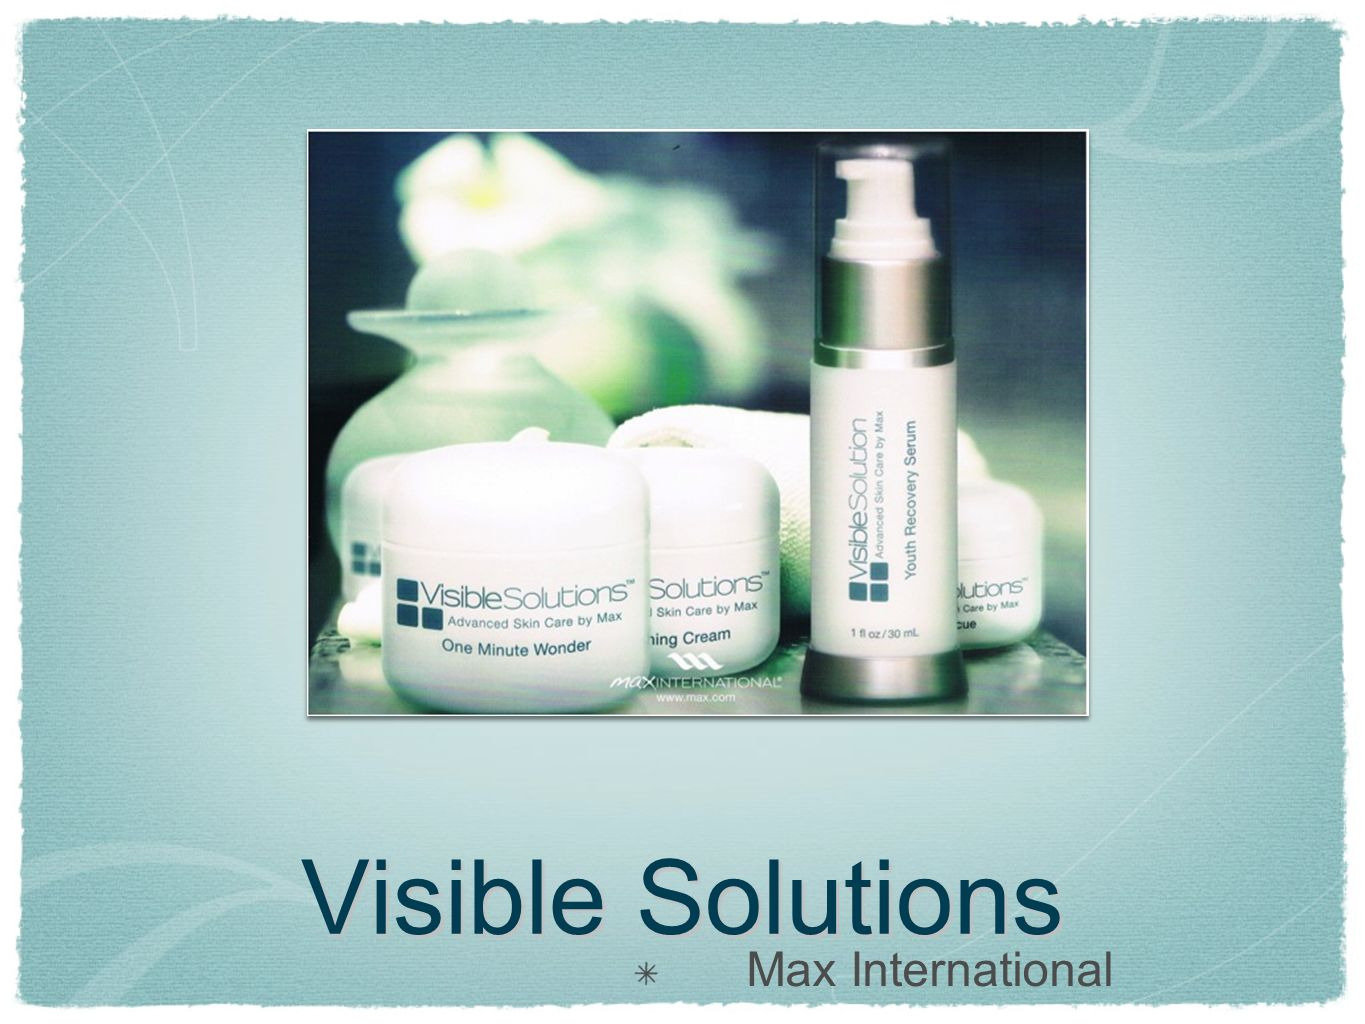 Visible Solutions Max International